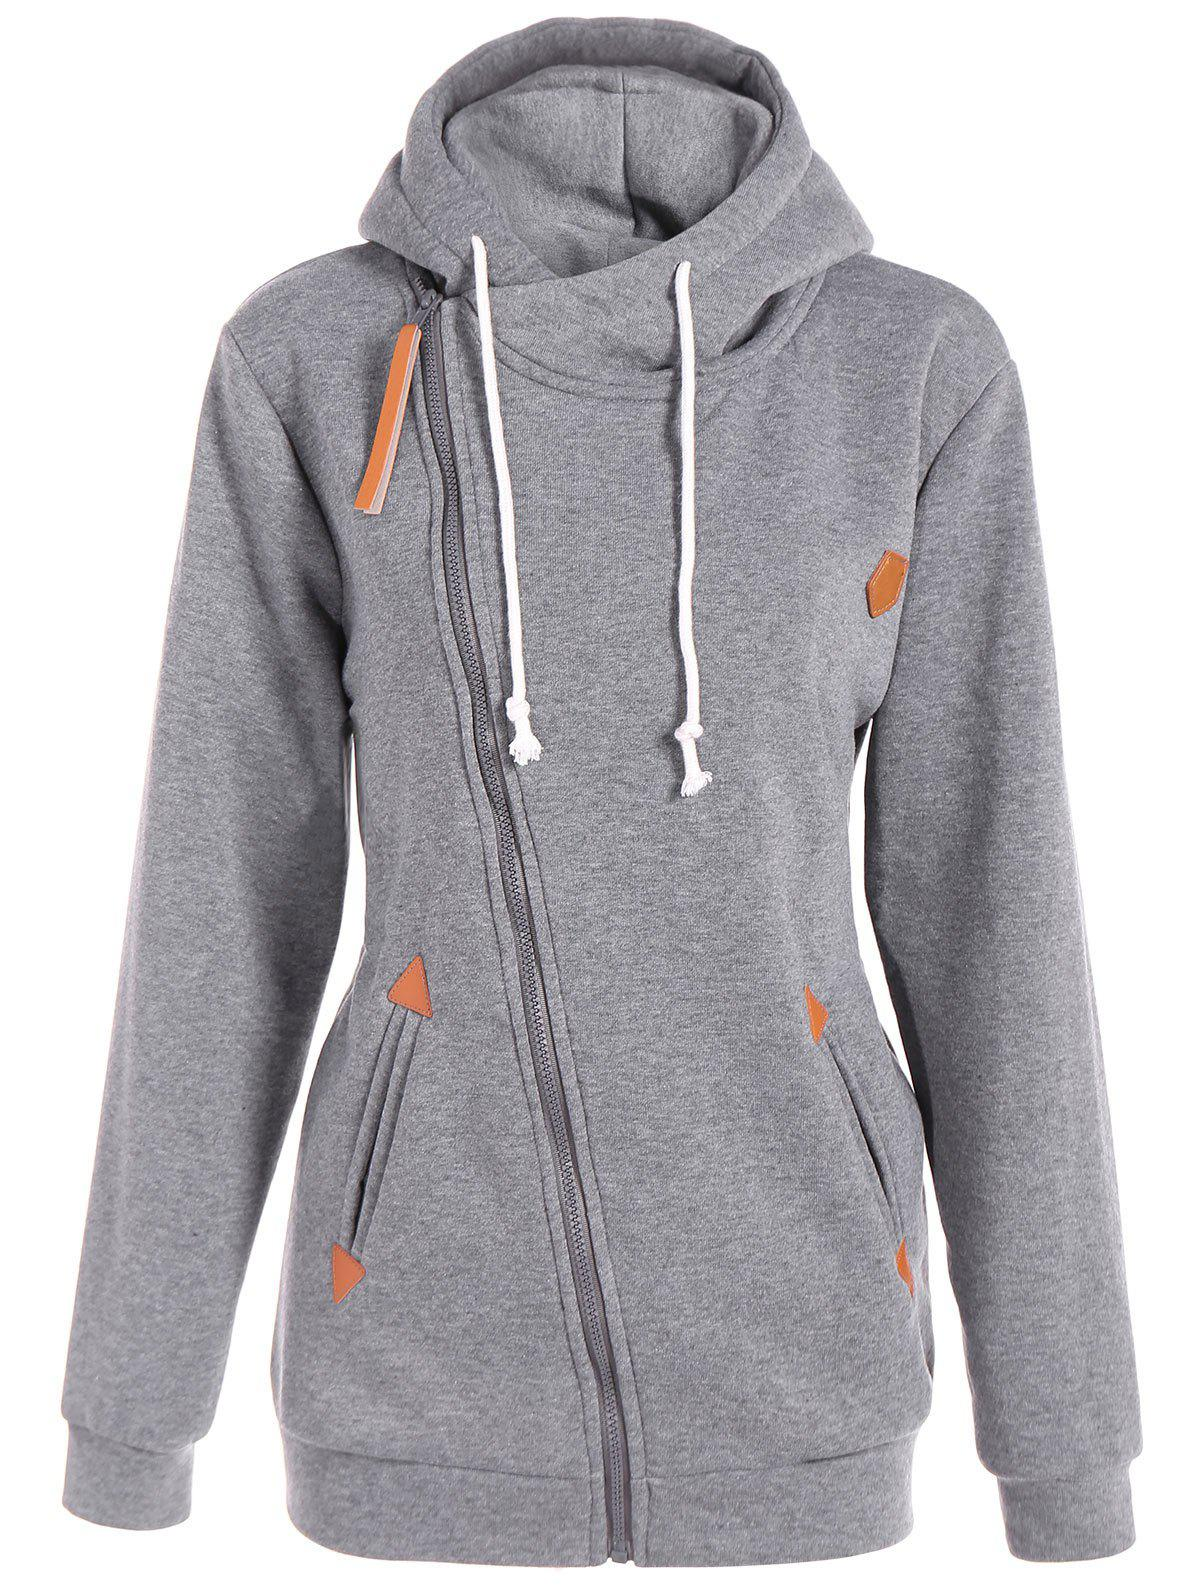 Inclined Zipper Drawstring Plus Size HoodieWOMEN<br><br>Size: 4XL; Color: GRAY; Material: Polyester; Shirt Length: Long; Sleeve Length: Full; Style: Casual; Pattern Style: Solid; Season: Fall,Spring; Weight: 0.500kg; Package Contents: 1 x Hoodie;